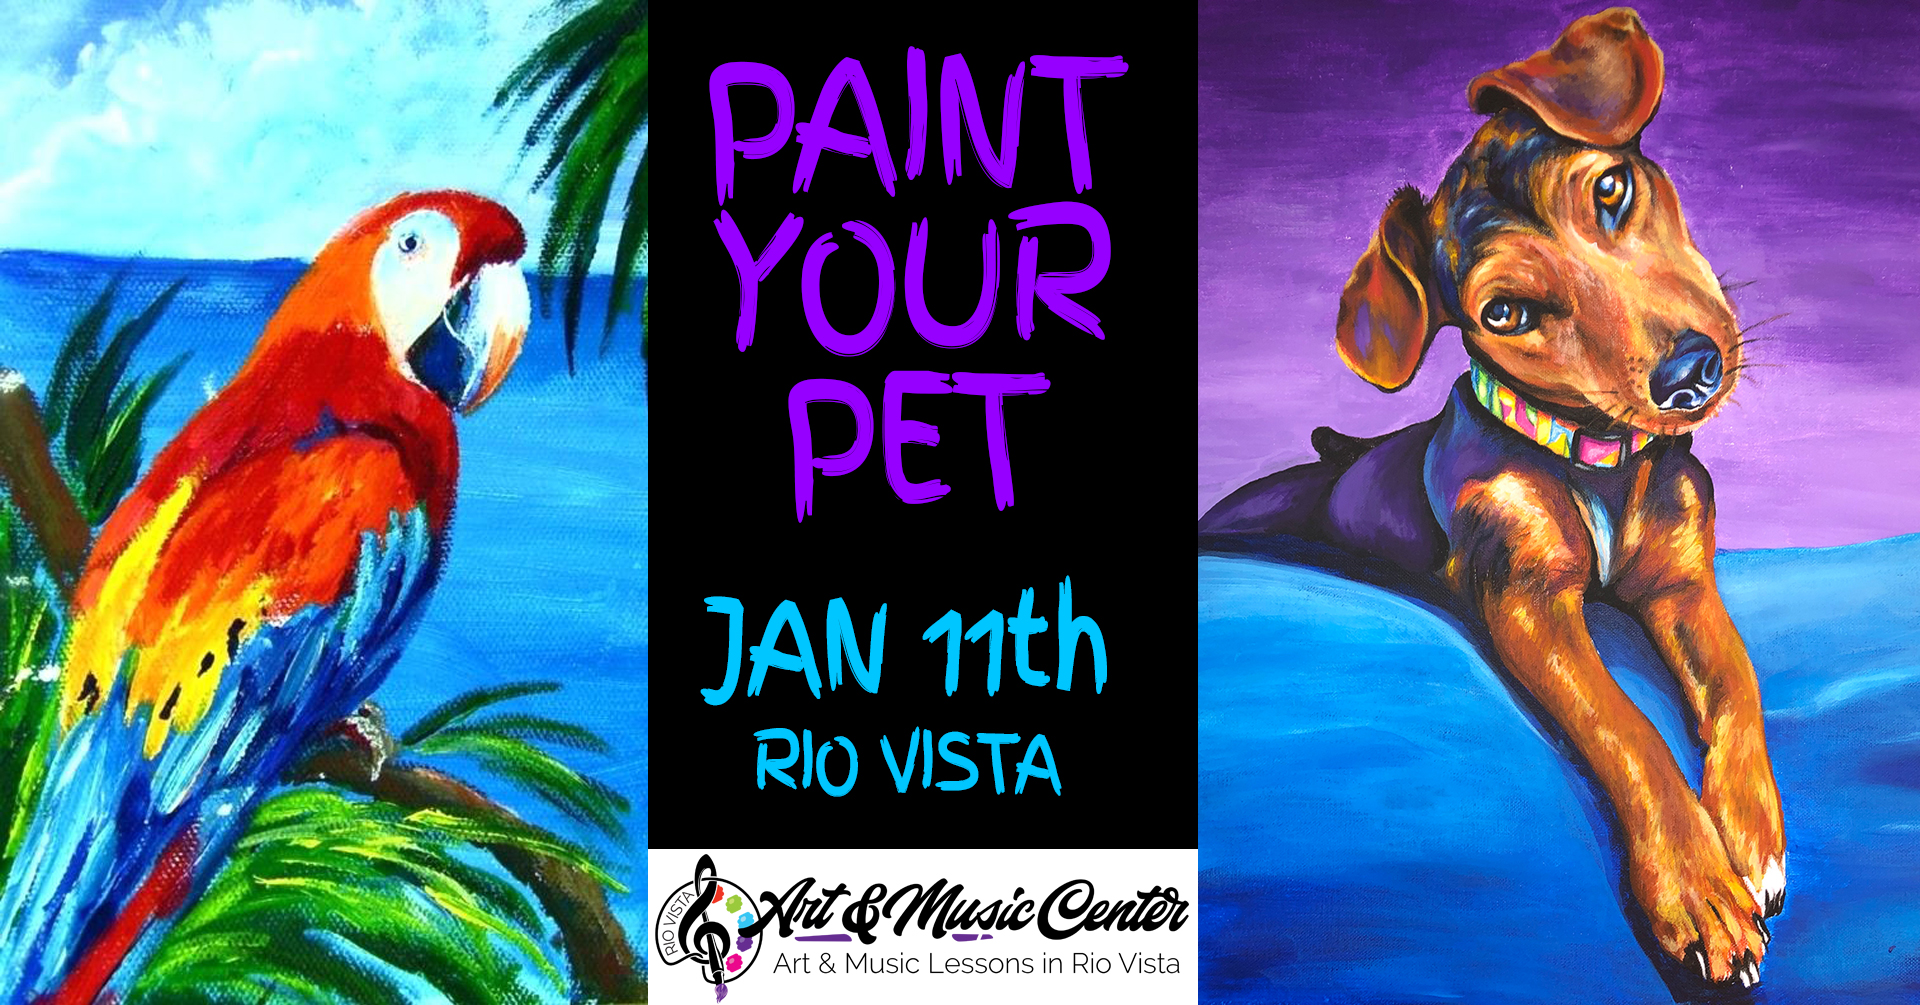 Paint-Your-Pet-Event-Cover.jpg